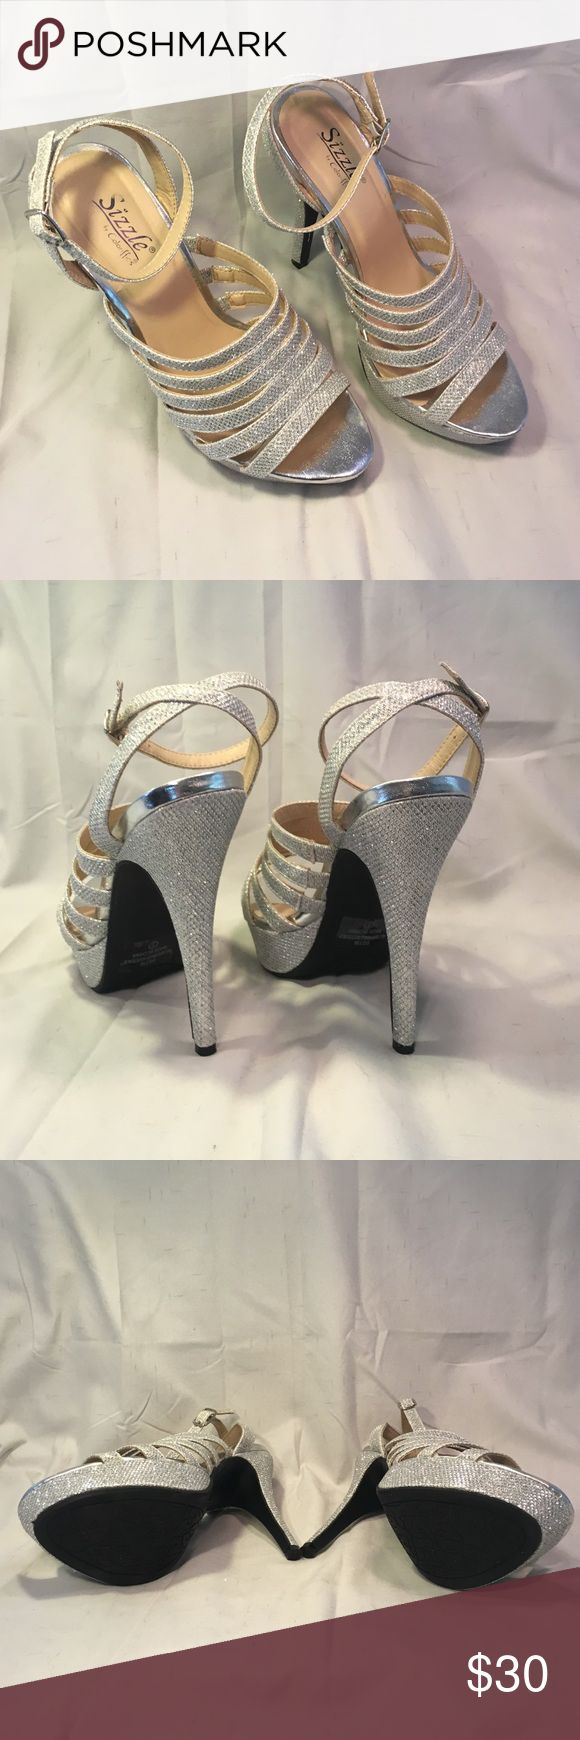 Sizzle silver dress shoes Silver strappy dress heels. Only worn once. Great for wedding, prom, formal. Sizzle by Coloriffics Shoes Heels